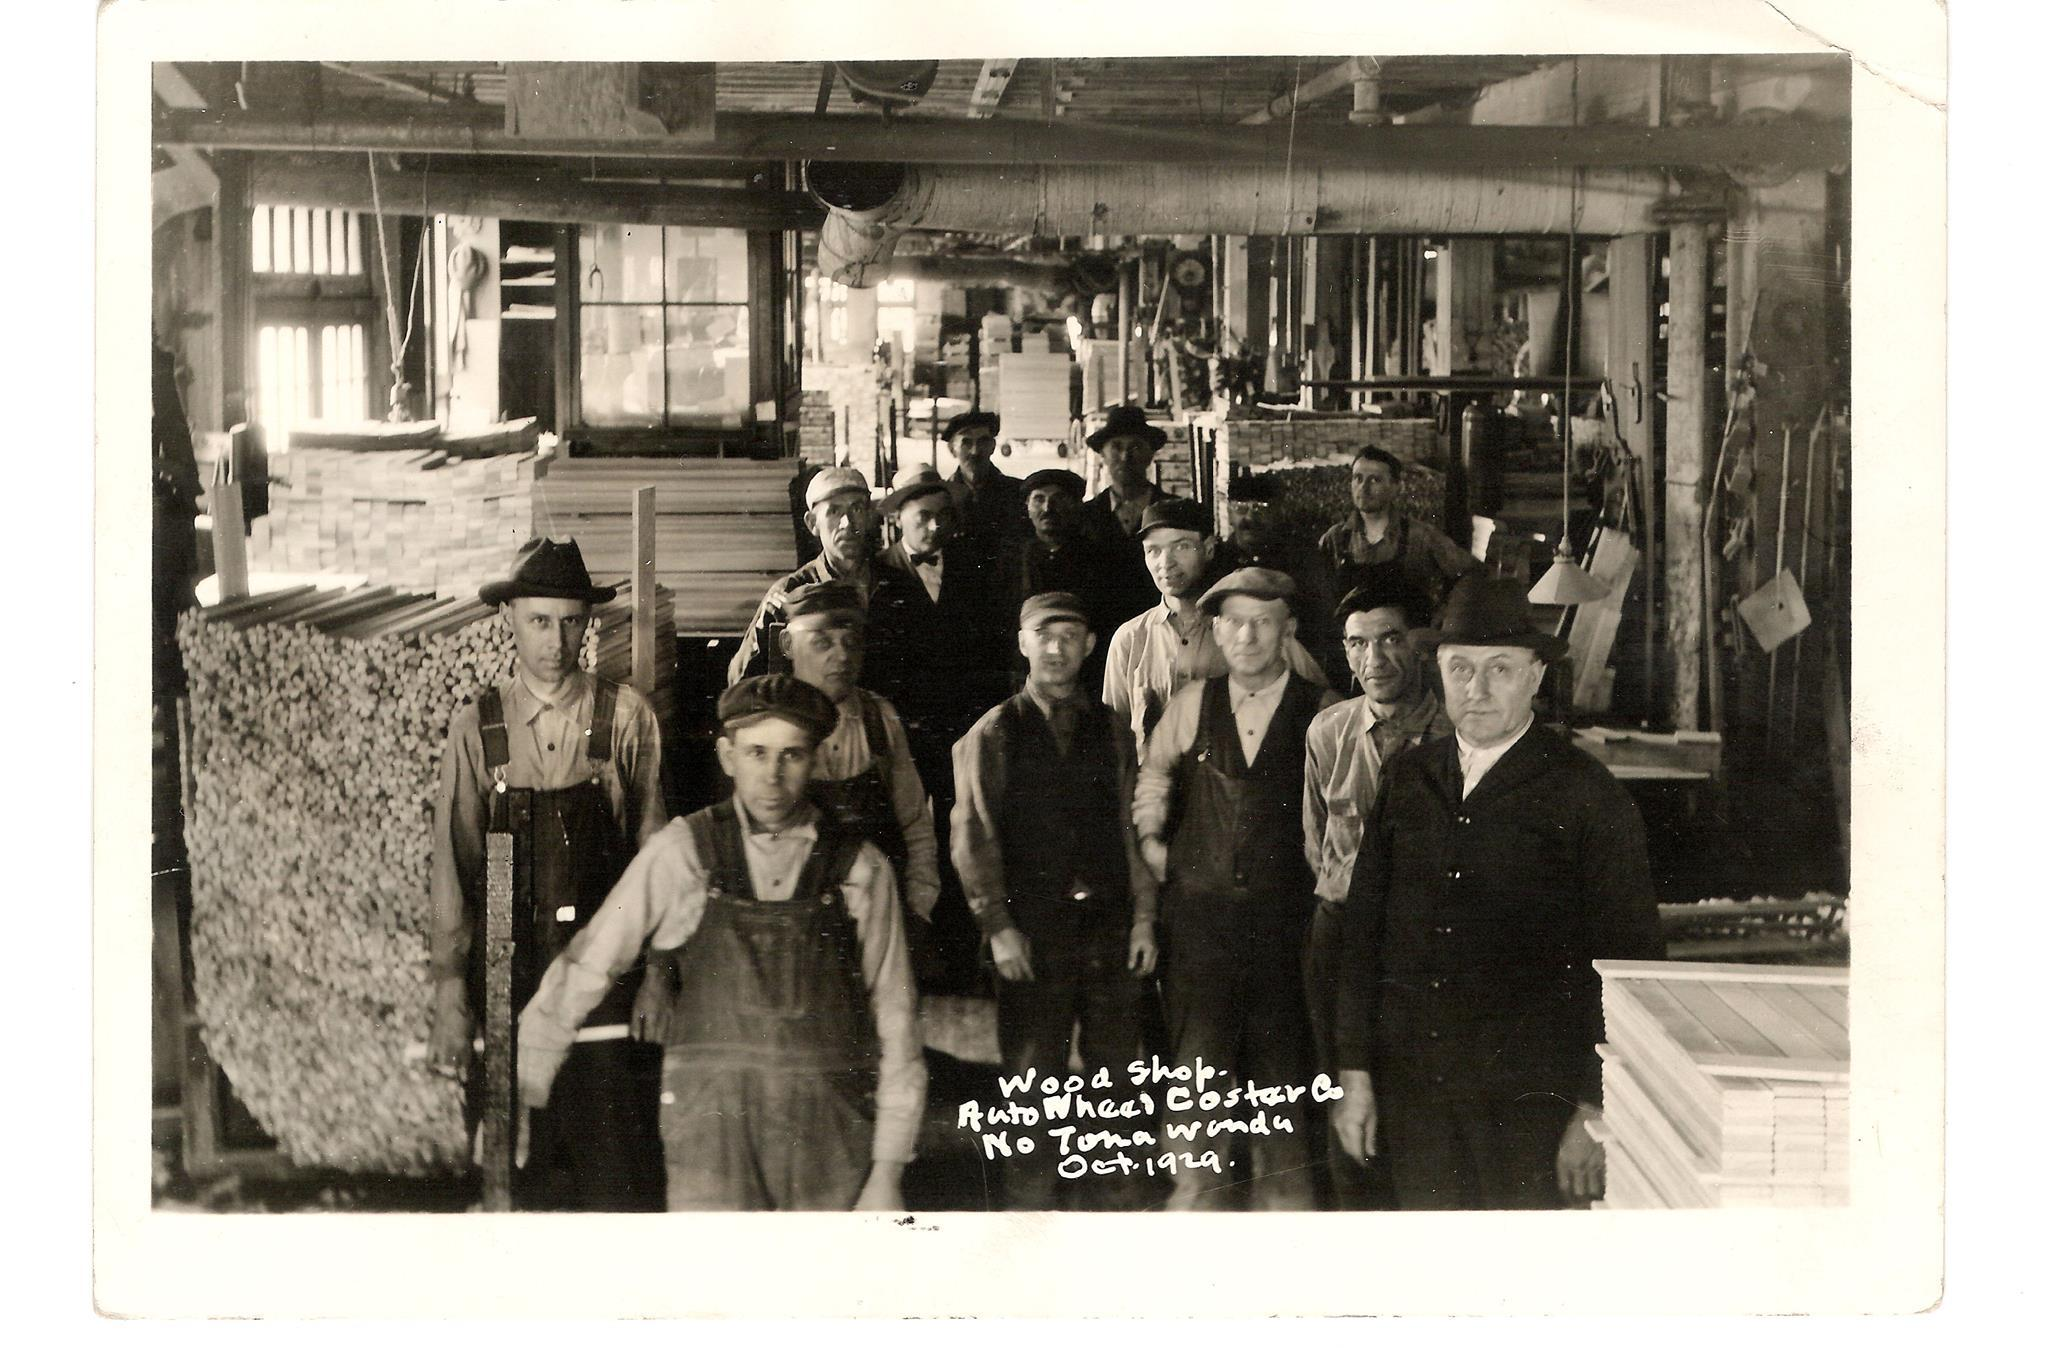 Auto Wheel Co., wood shop, photo (NTHM, 1929-10).jpg